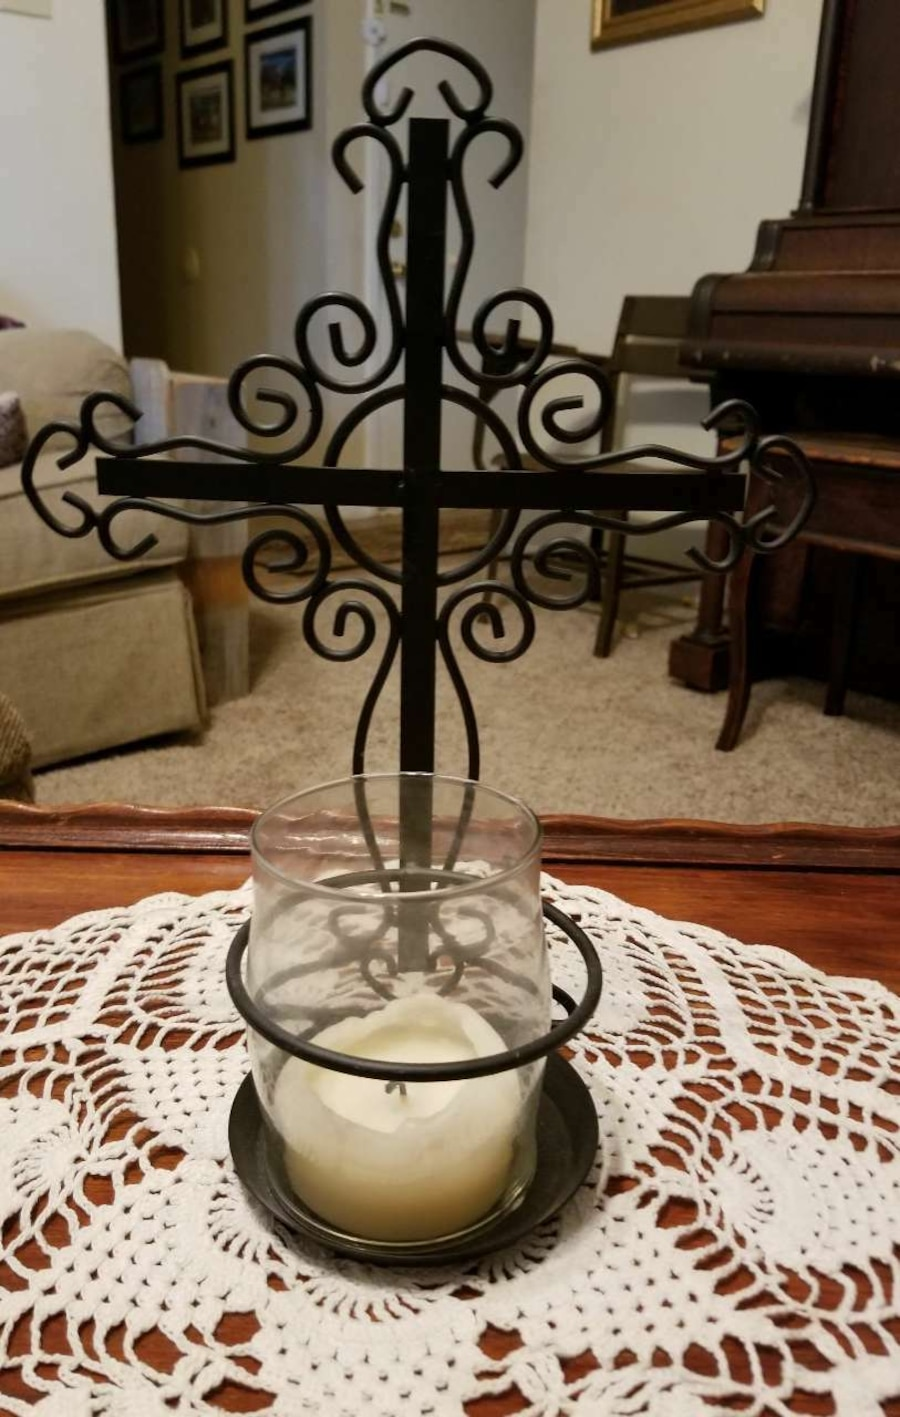 Decorative Cross with Candle